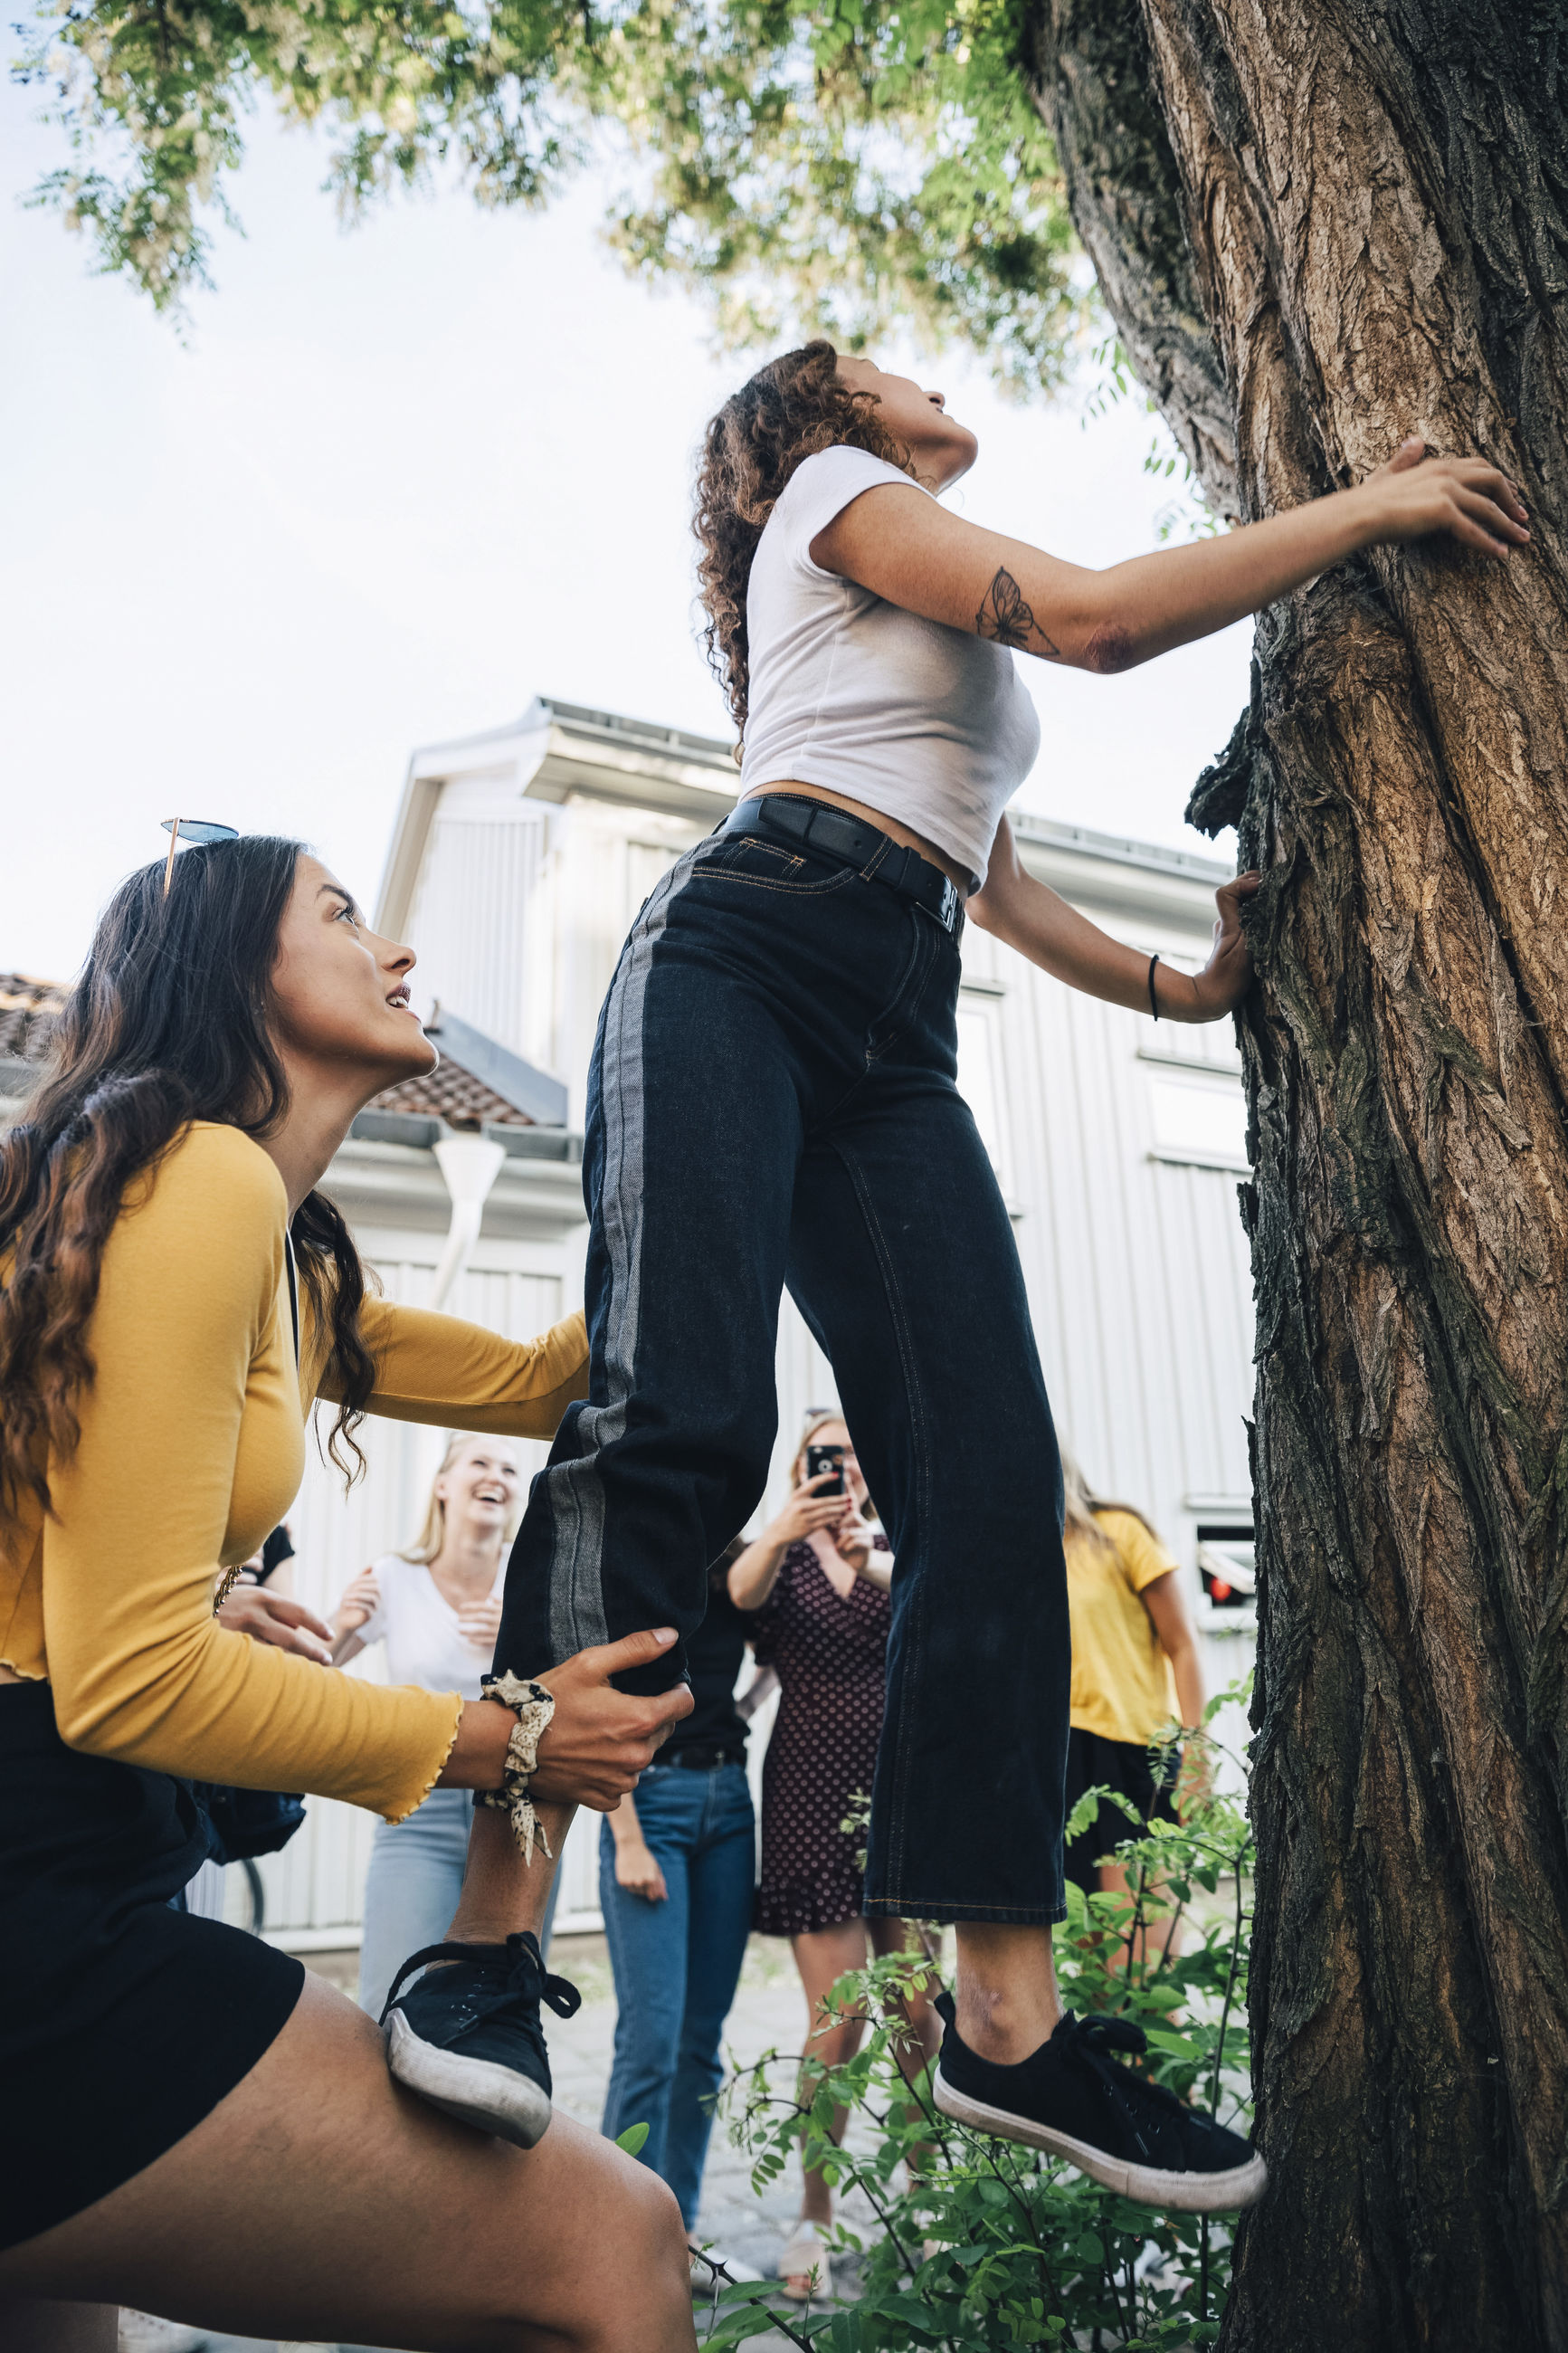 WOMAN STANDING BY PEOPLE IN A TREE